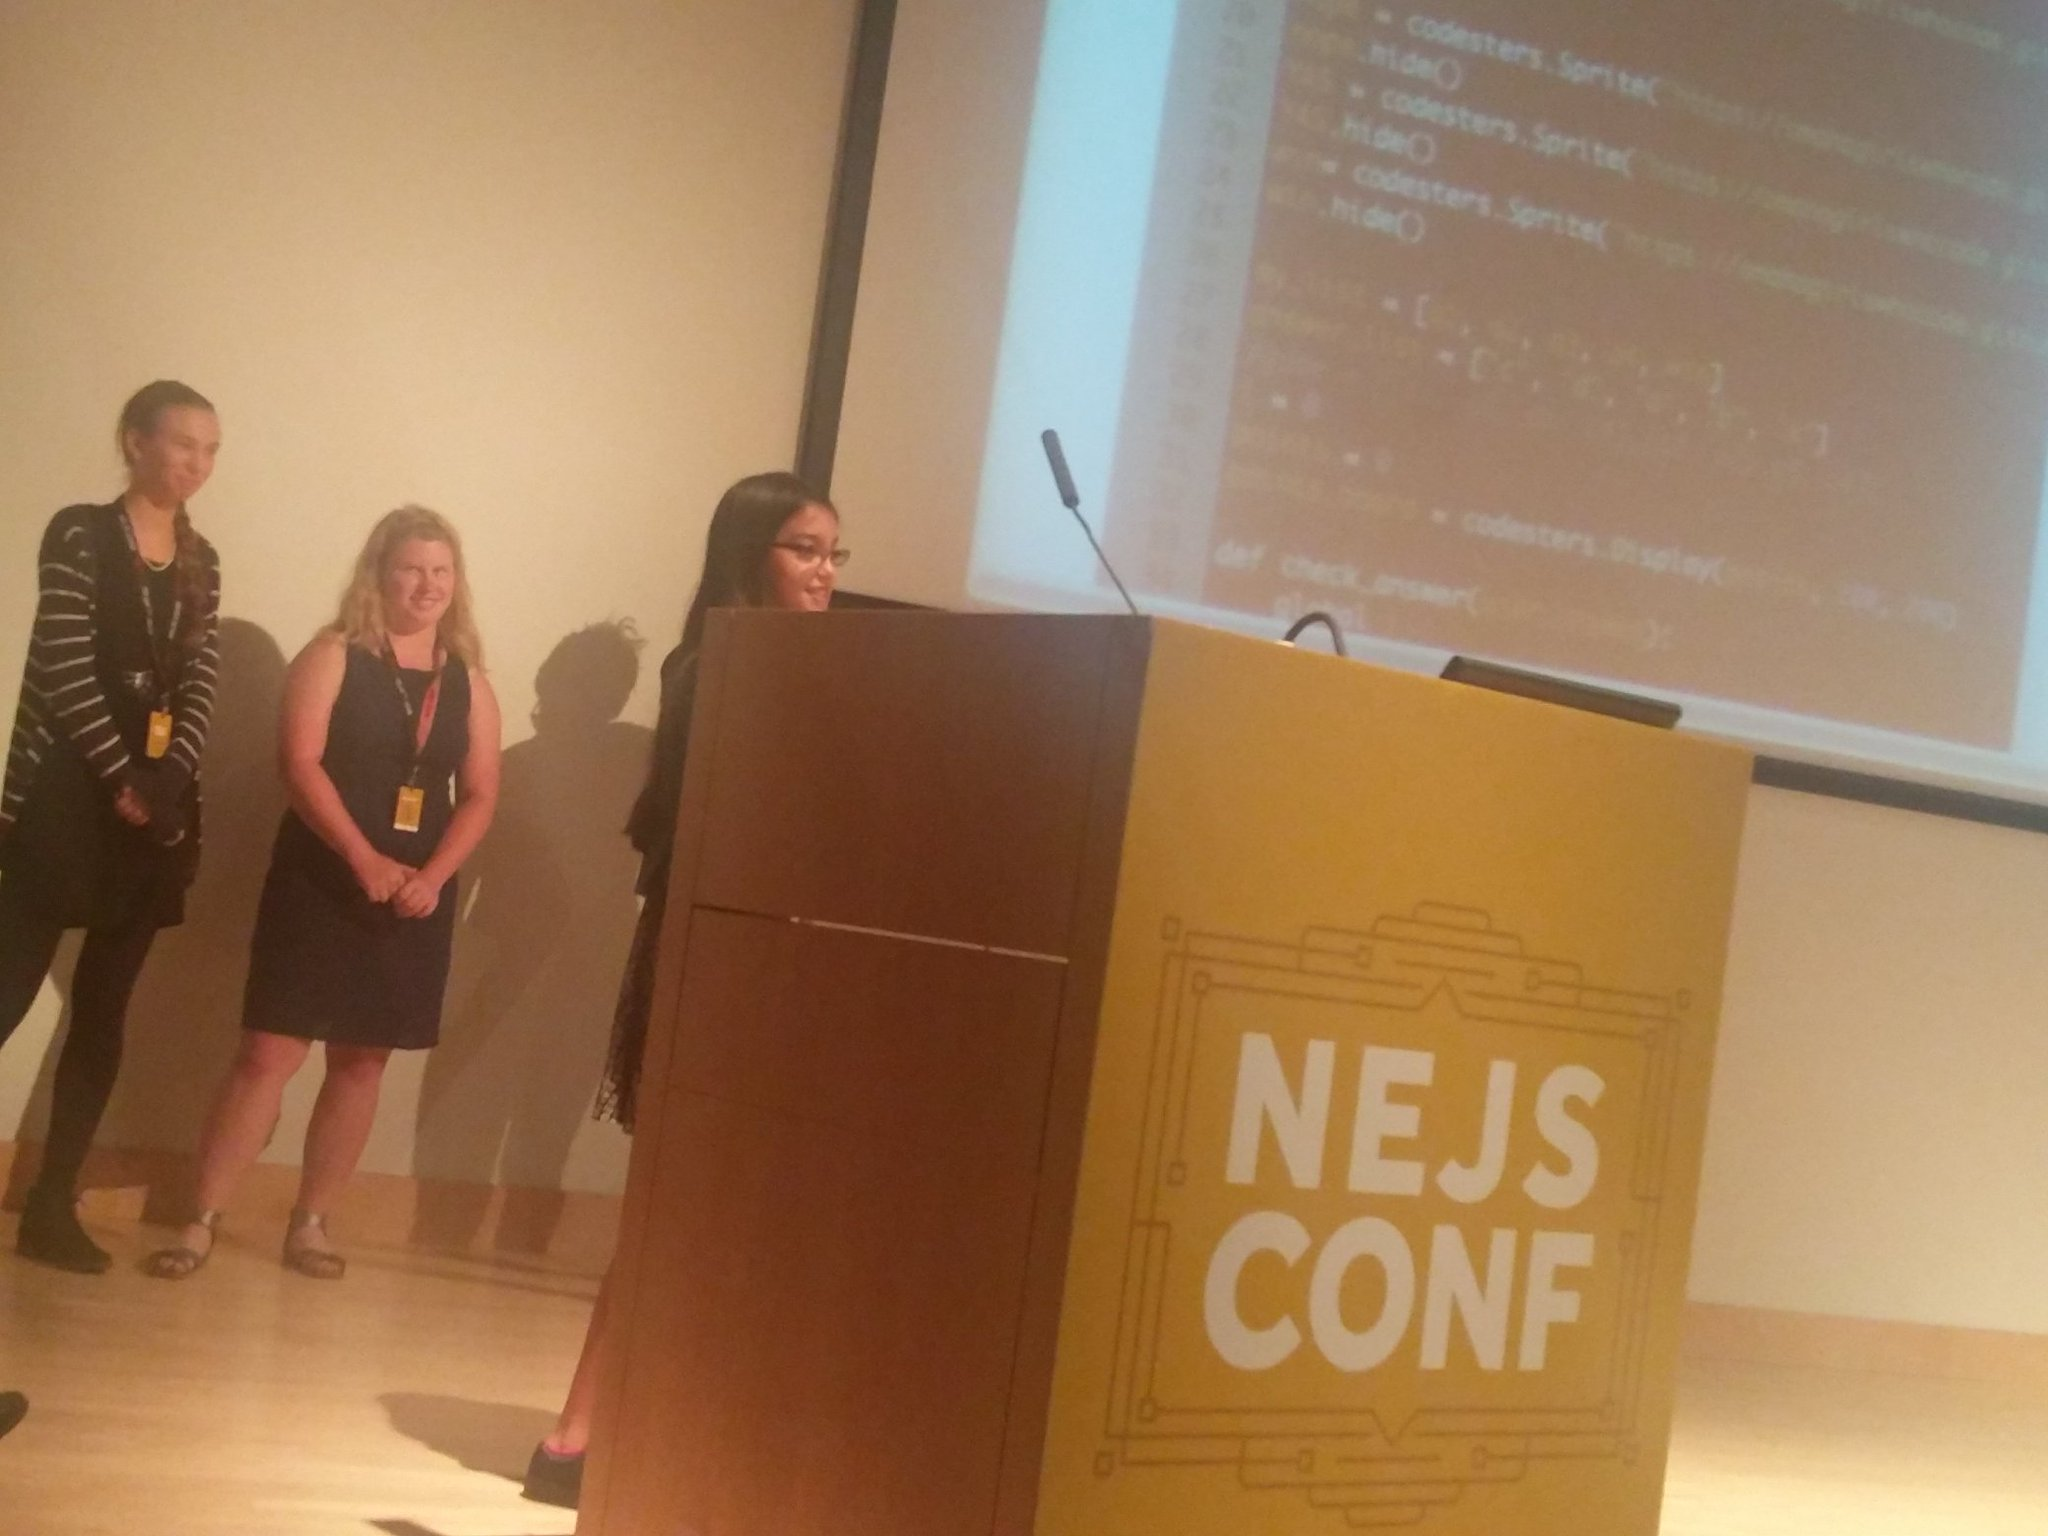 it's so inspiring to hear these young girls sharing the story of their first website @omahagirlswhocode #nejsconf https://t.co/hOVQBNgPBj